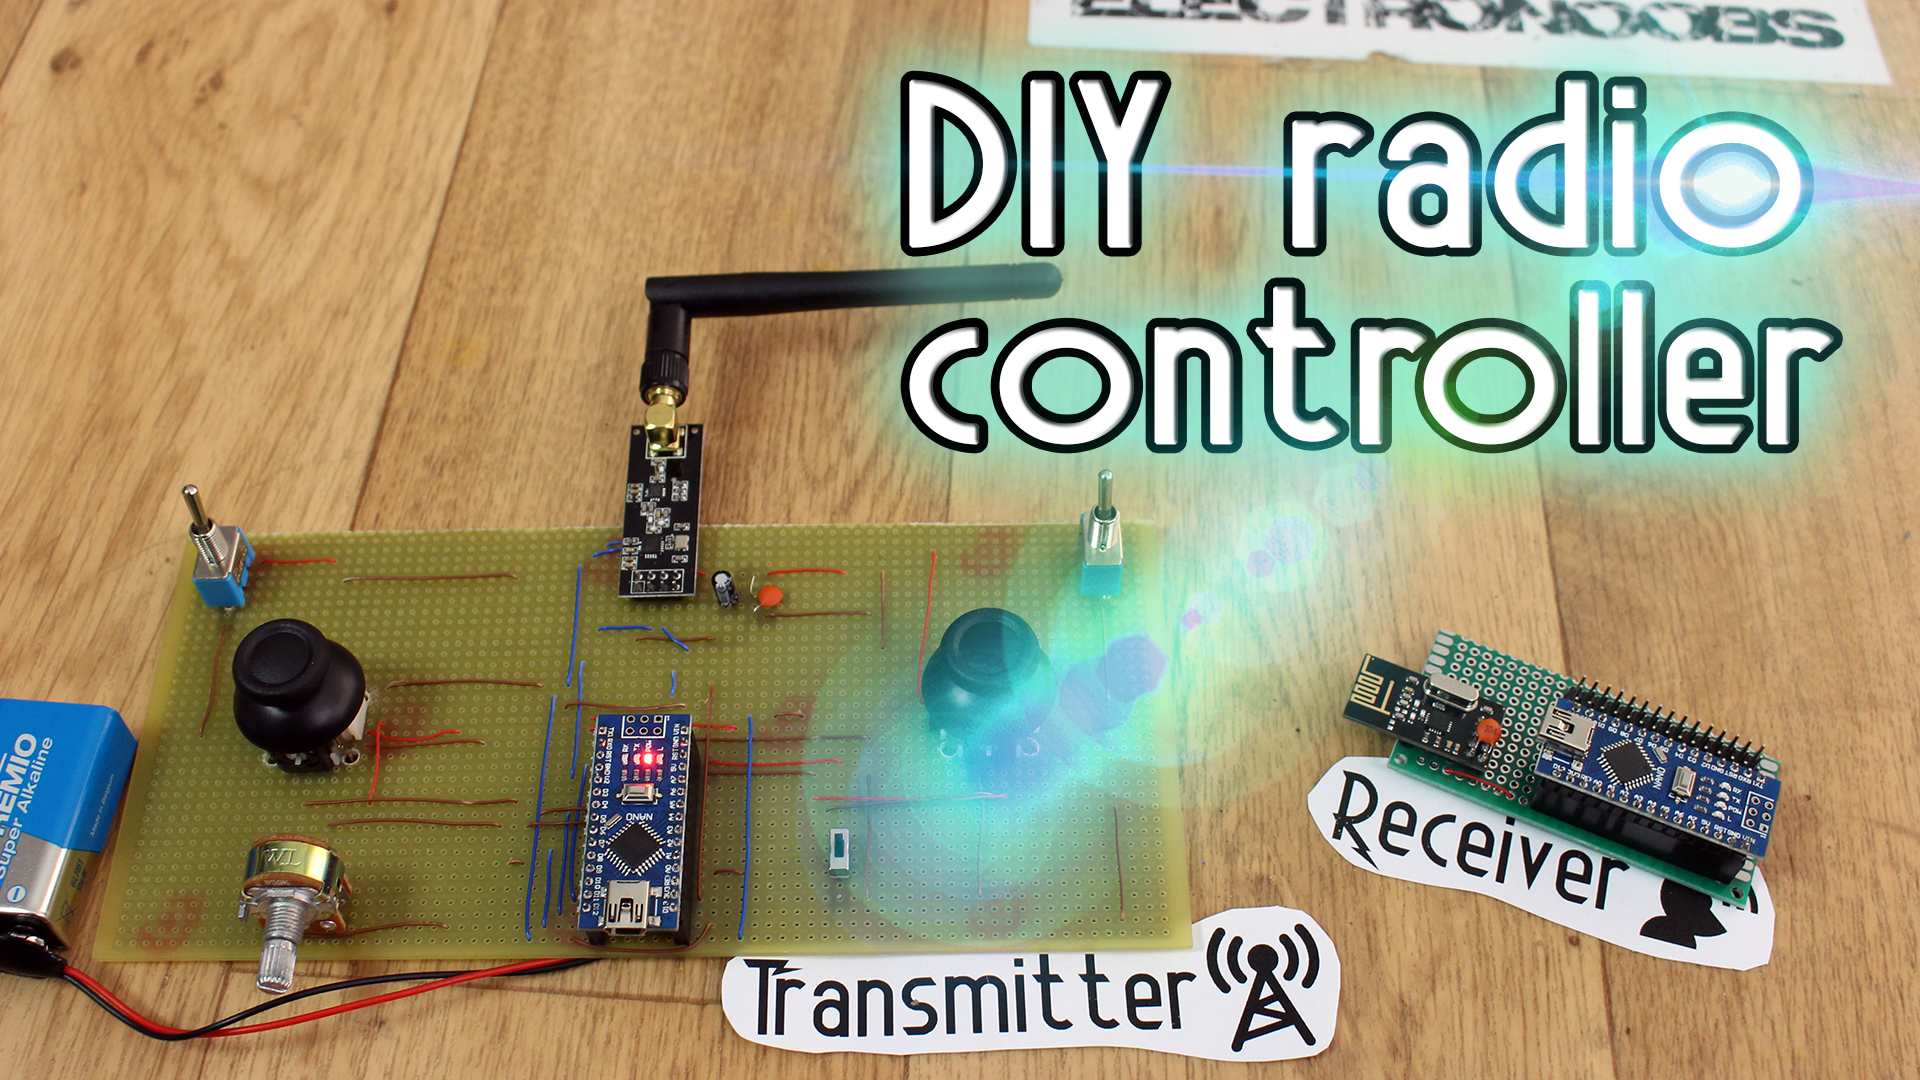 Arduino Tutorials Begginers Advanced Easy Basic Transmitterreceiverradiocontrolschematicdiagrampng Build A Radio Transmitter With 5 Analog Channels And 2 Digital Use The Power Amplified Antenna Send 7 Bytes Of Data Receive Signal Create